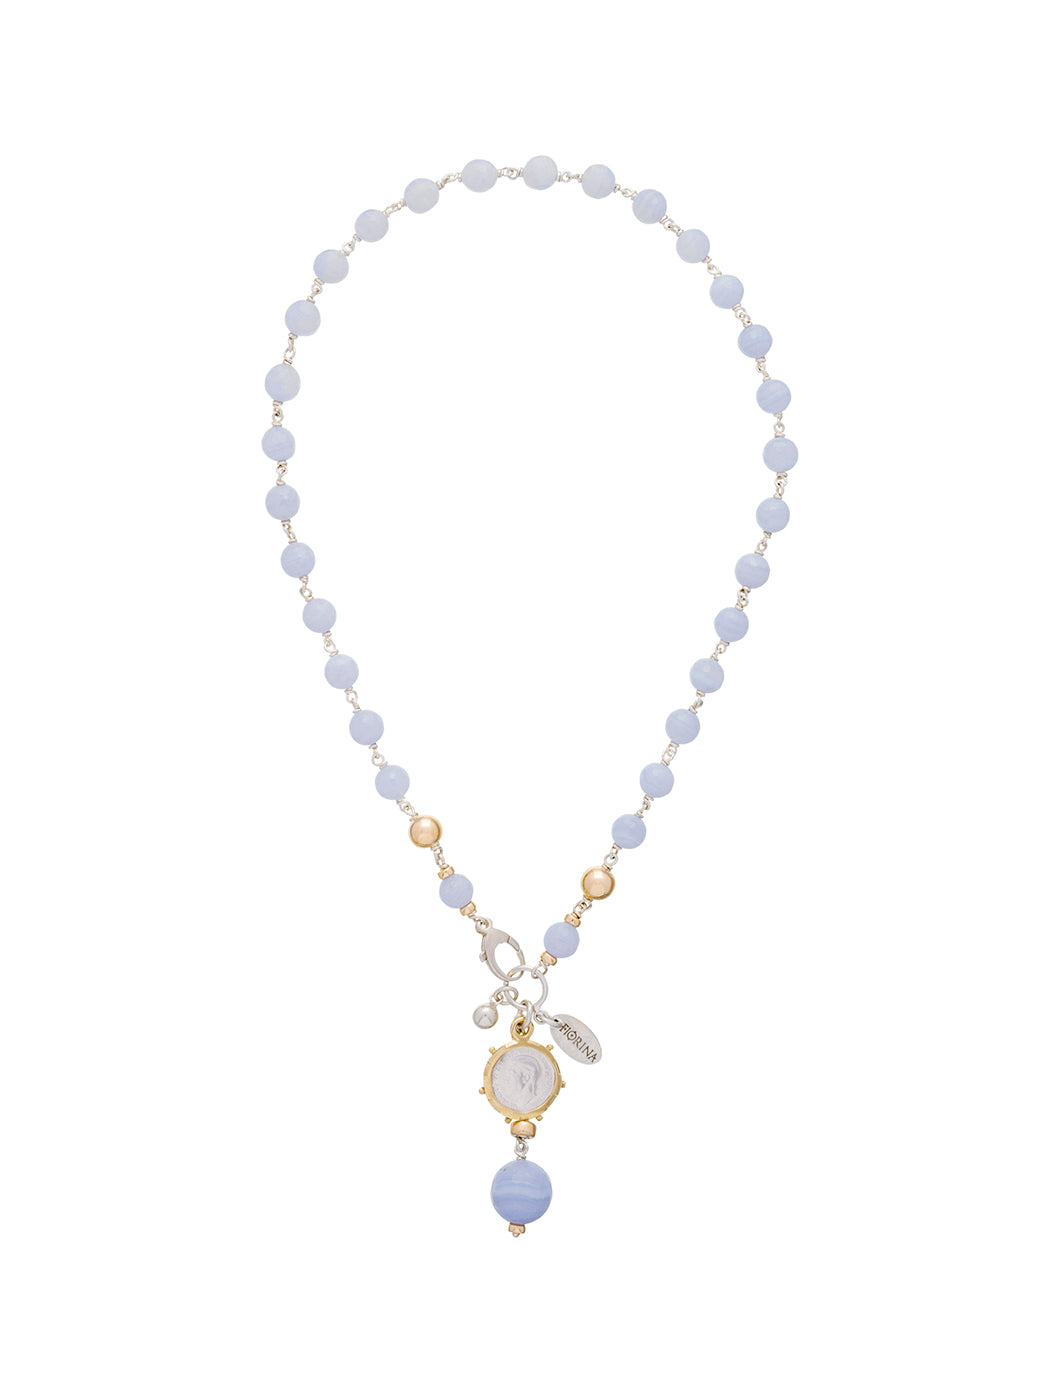 Fiorina Jewellery Pearlina Necklace Chalcedony